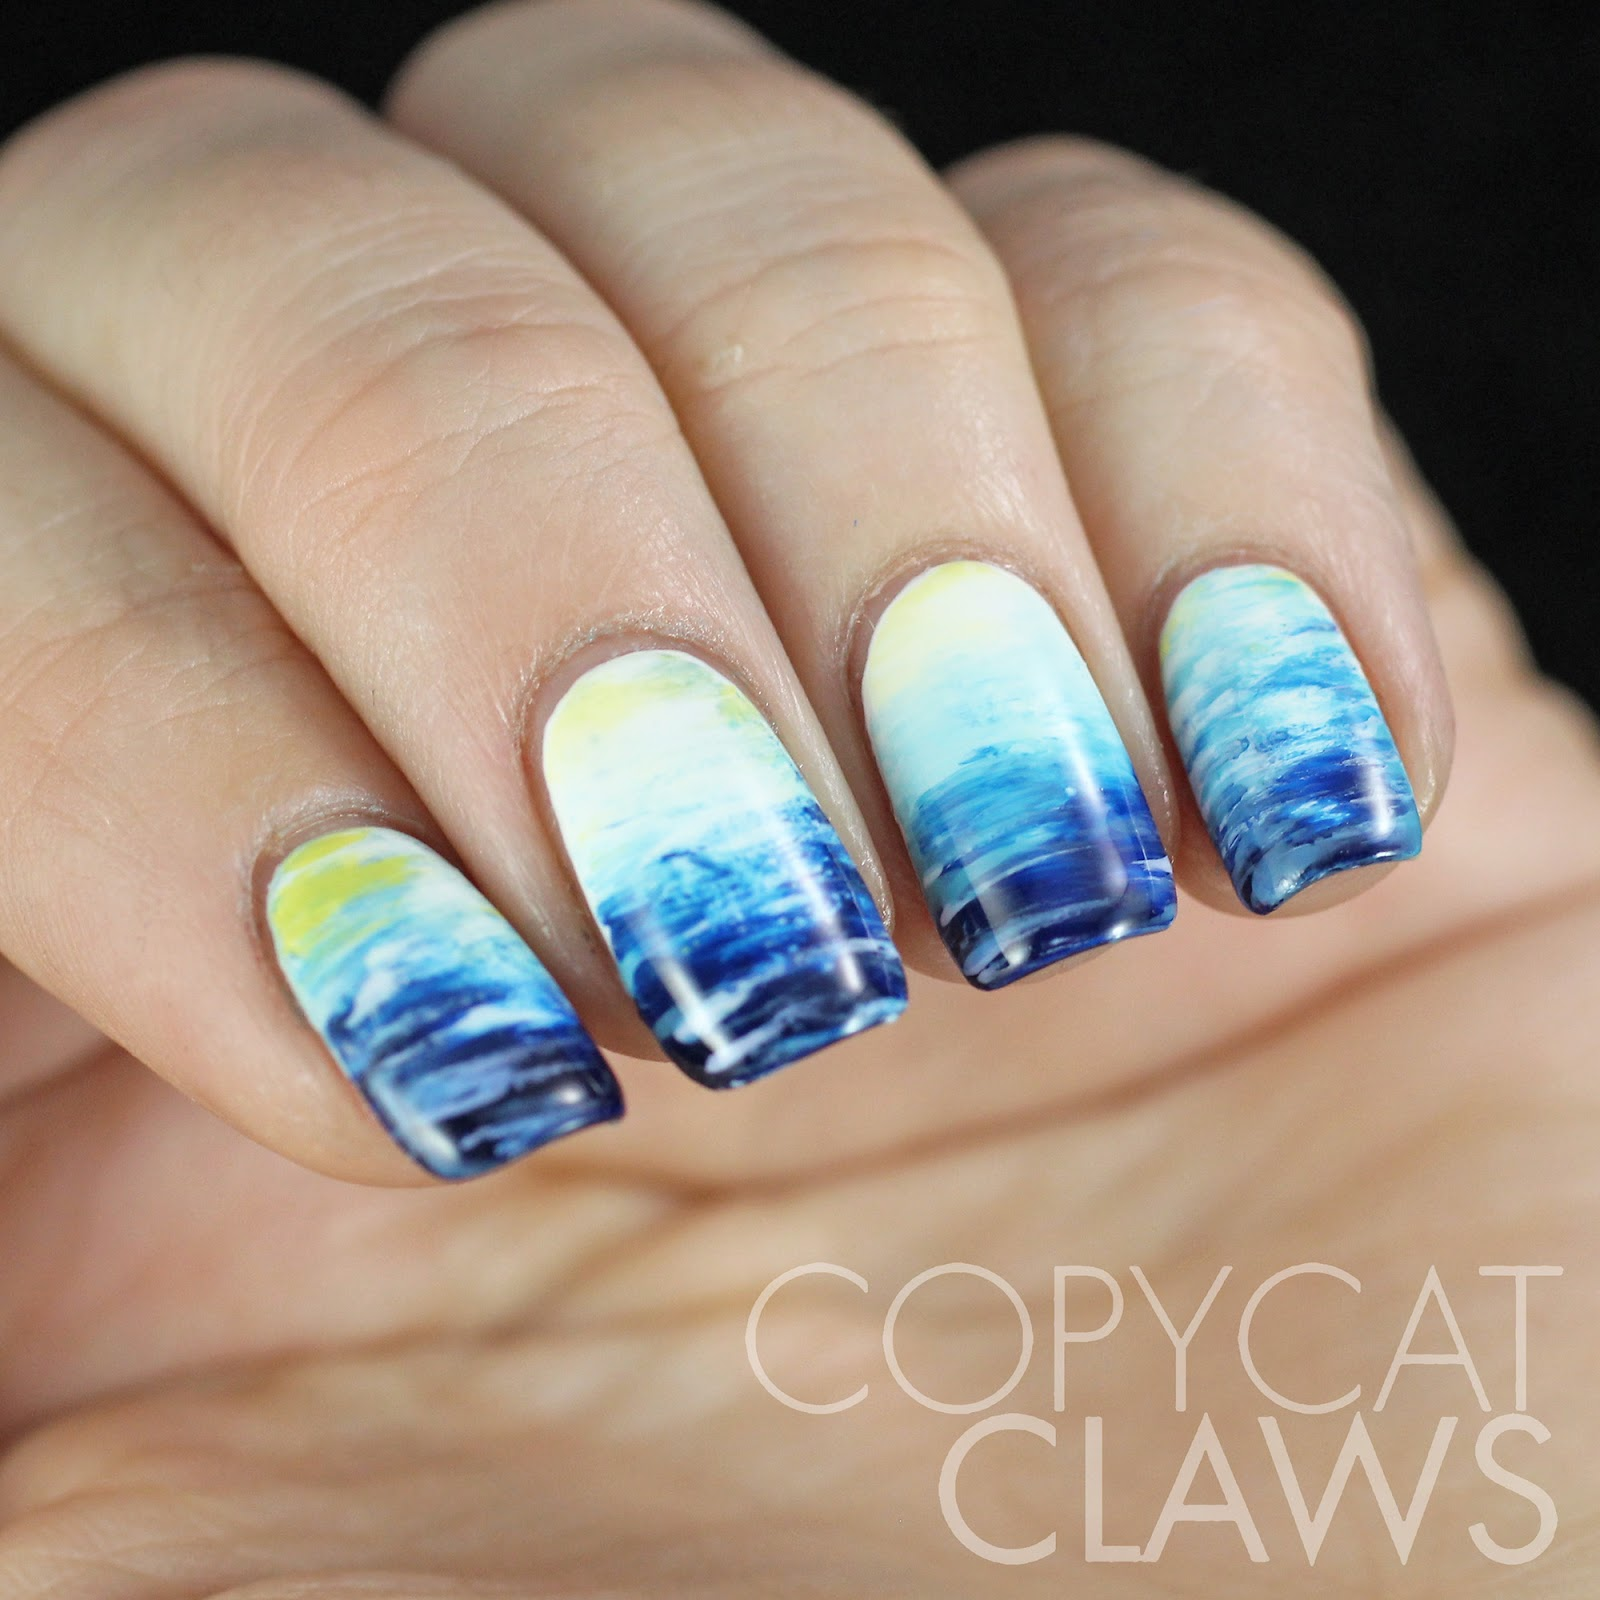 Copycat claws march 2015 the digit al dozen does nature day 3 fan brush ocean nail art prinsesfo Image collections